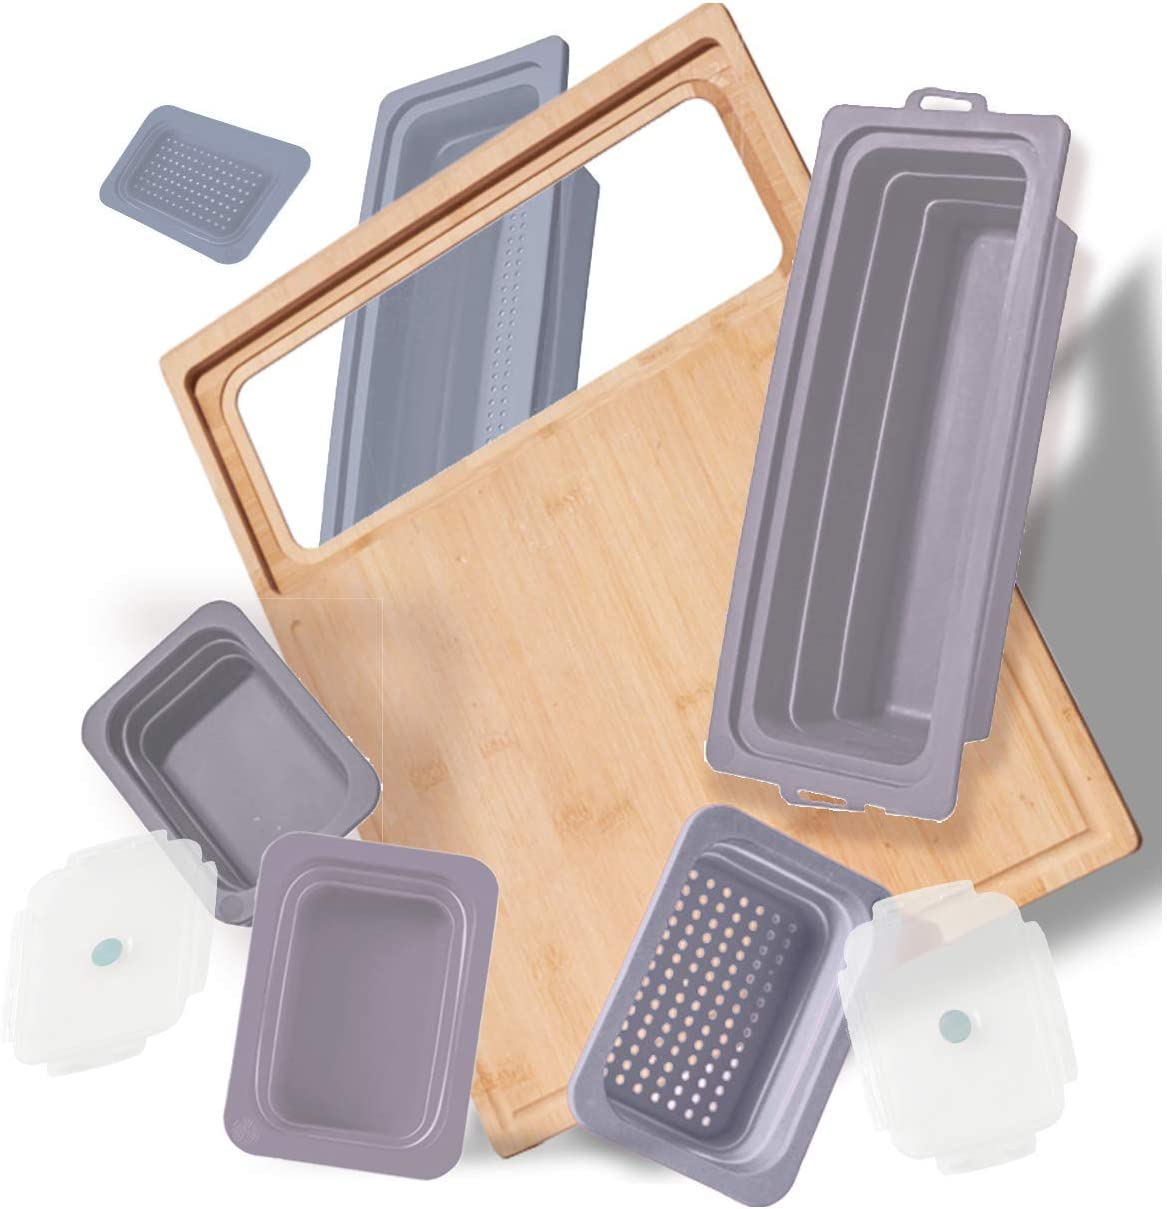 Soji ZenPrep Bamboo Cutting Board for Kitchen - Collapsible Silicone Food Storage Containers Trays (Steel)